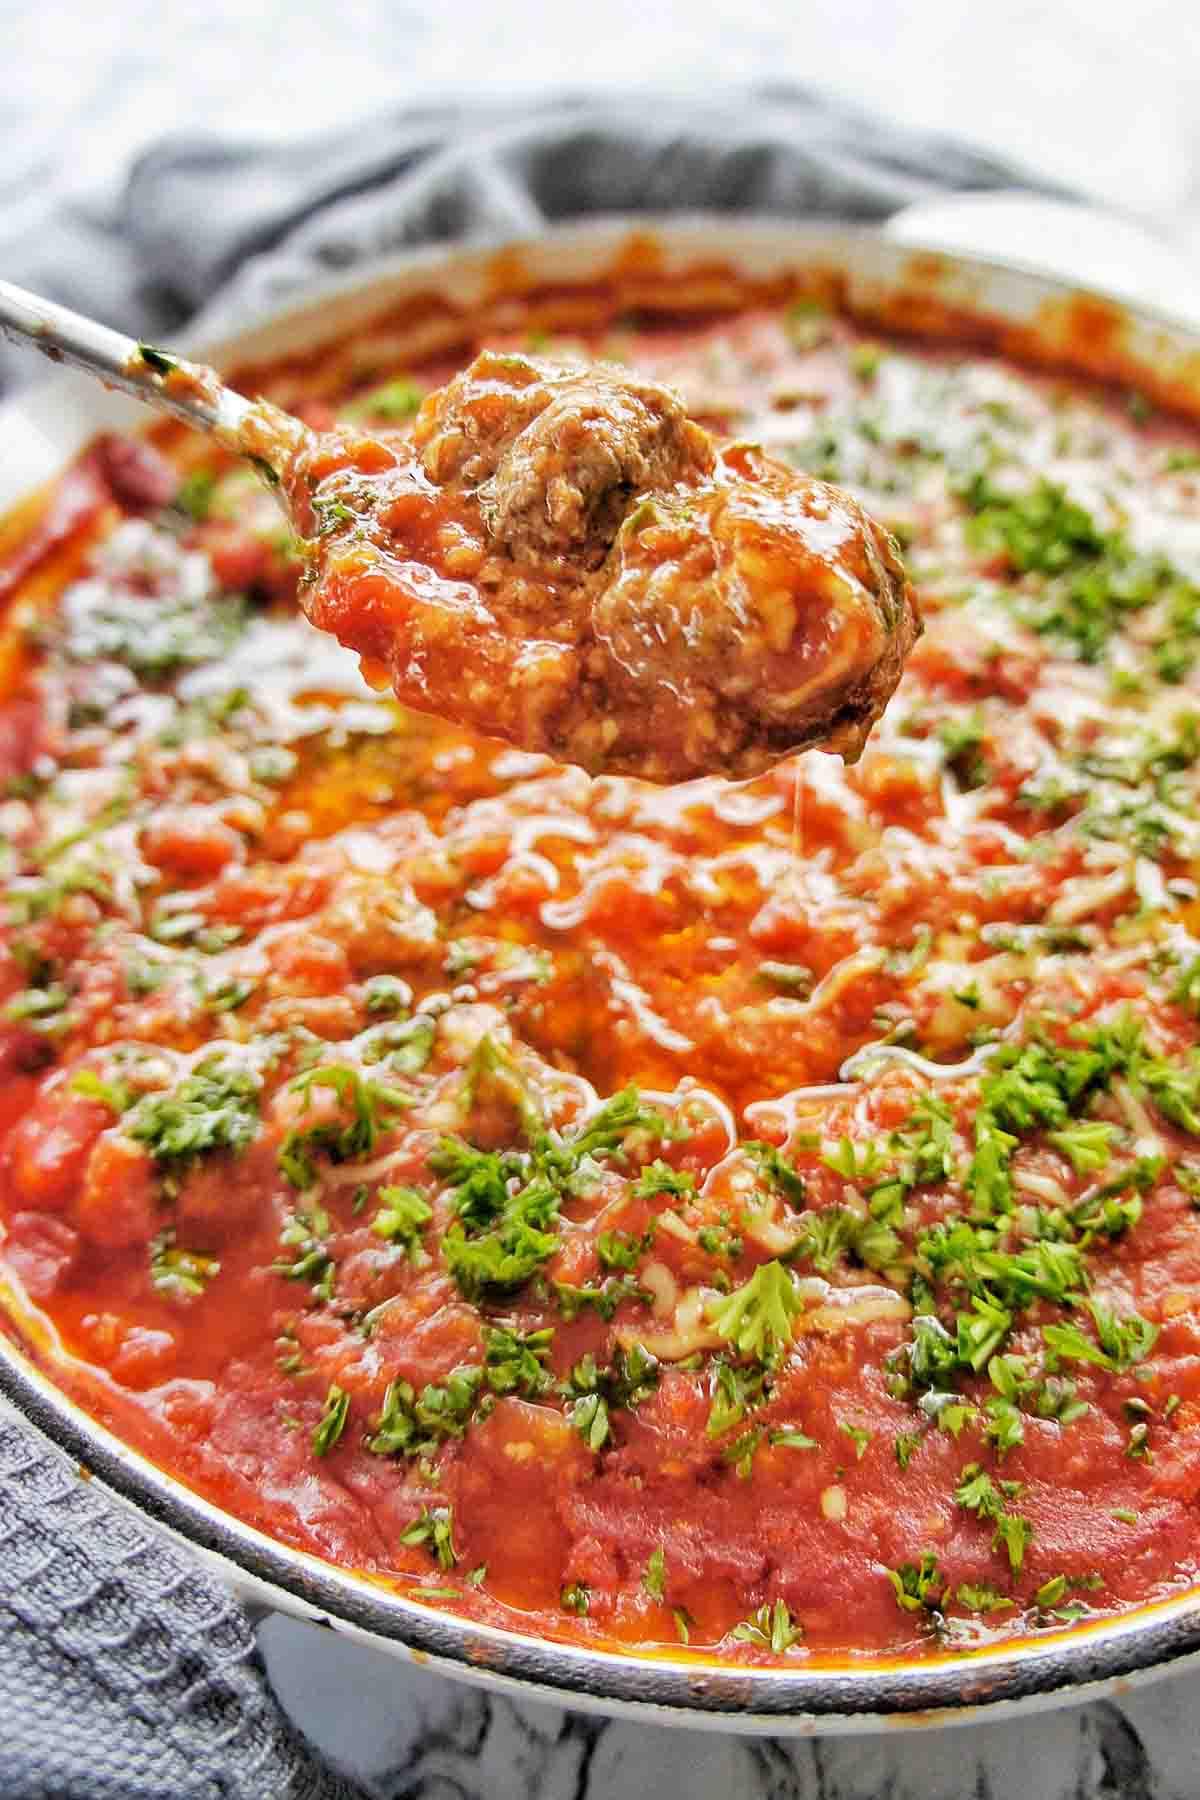 Spoon holding meatballs above a skillet of cooked Italian meatballs